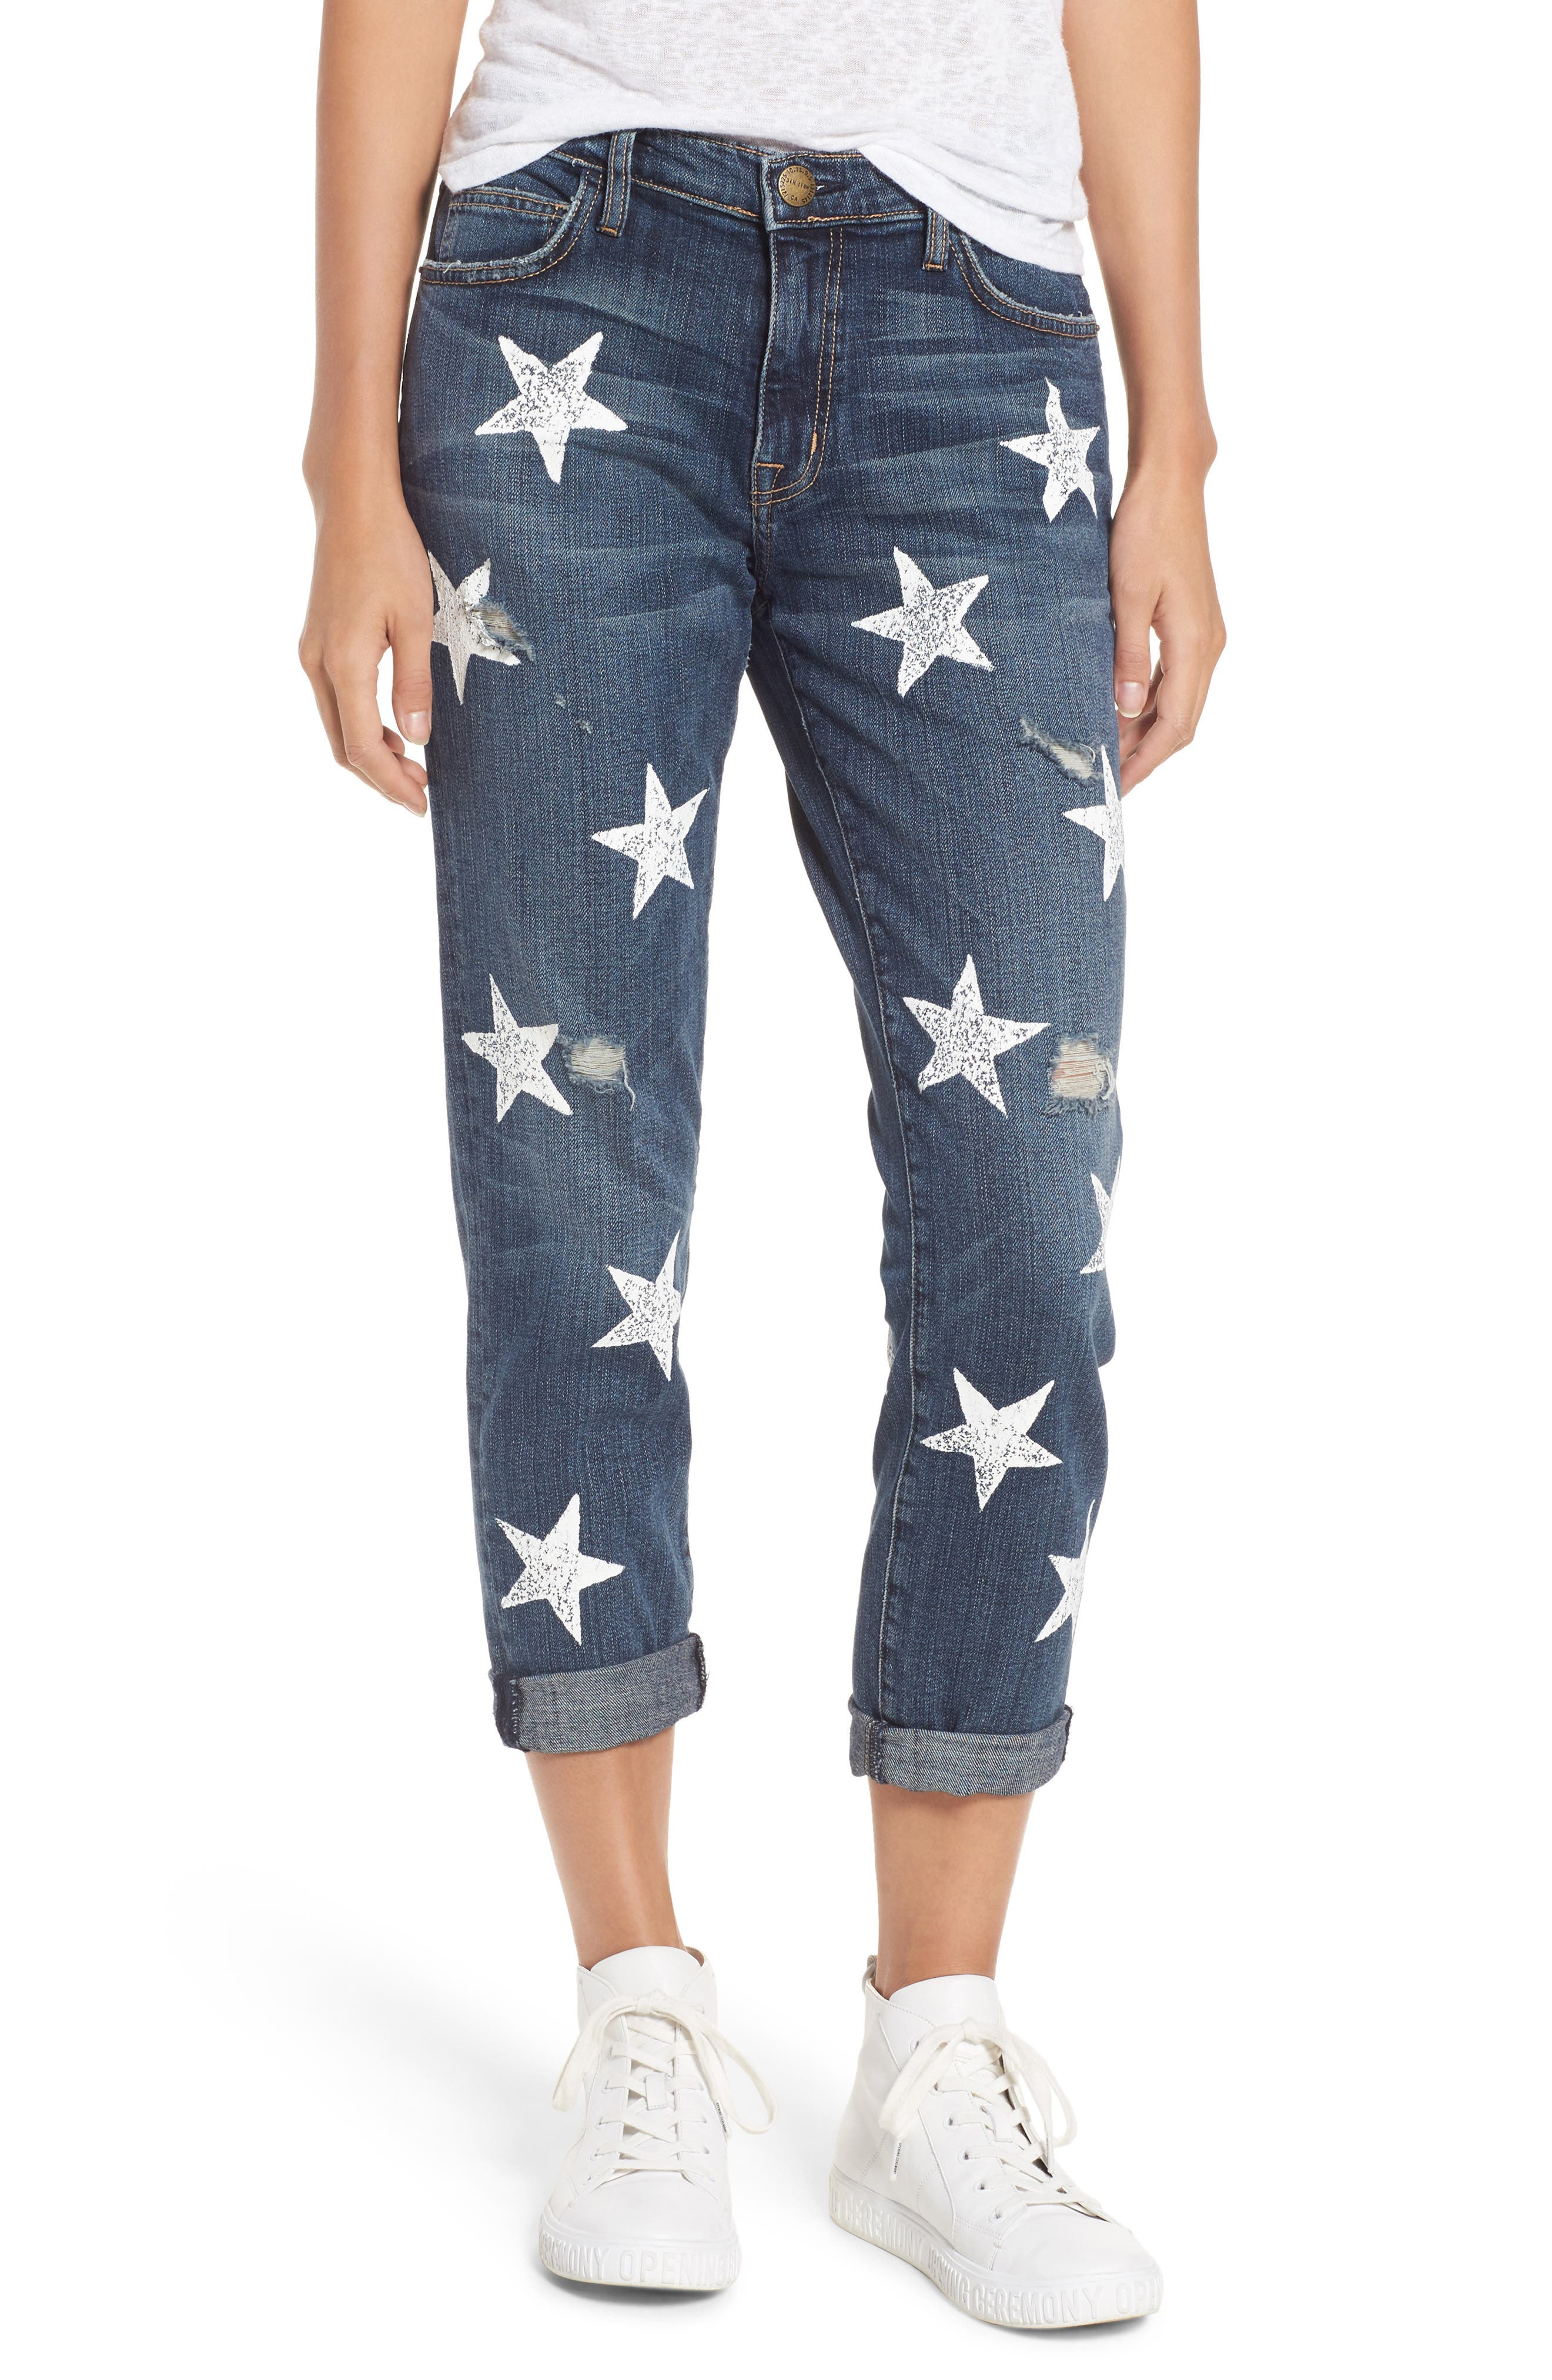 Alternate Image 1 Selected - Current/Elliott The Fling High Waist Boyfriend Jeans (Loved Destroy with White Stars)